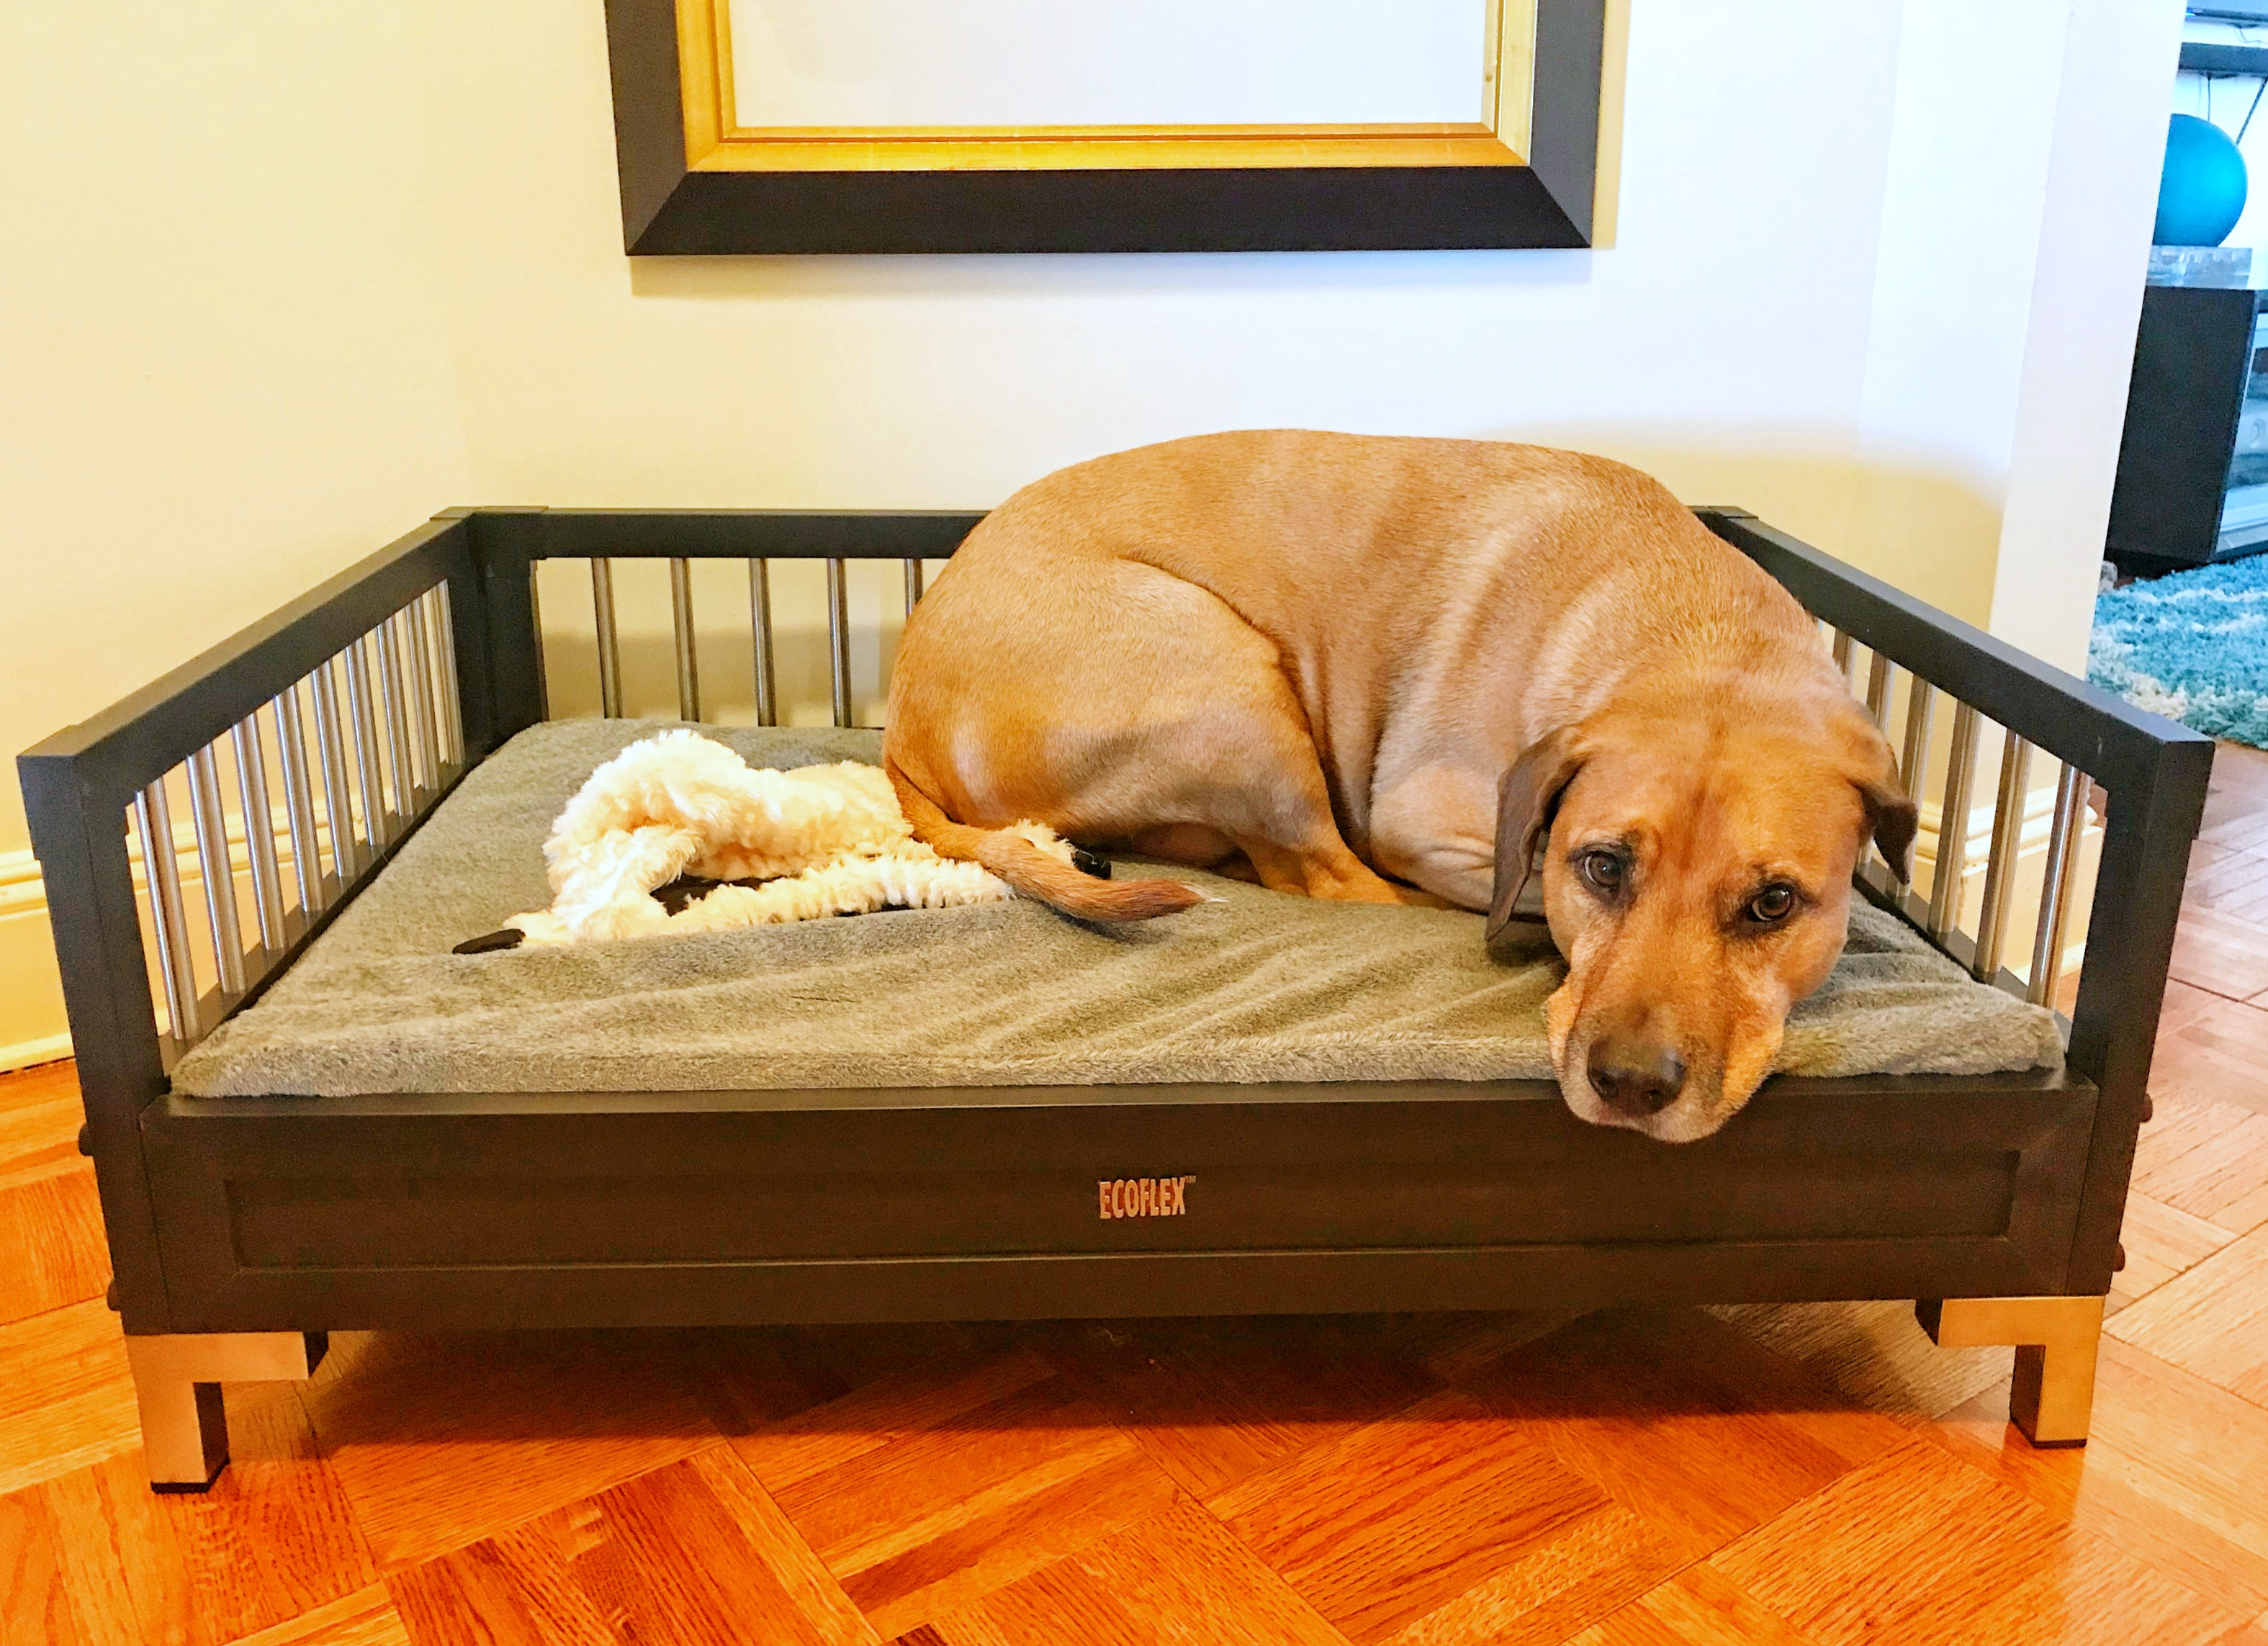 ecoflex dog bed manhattan